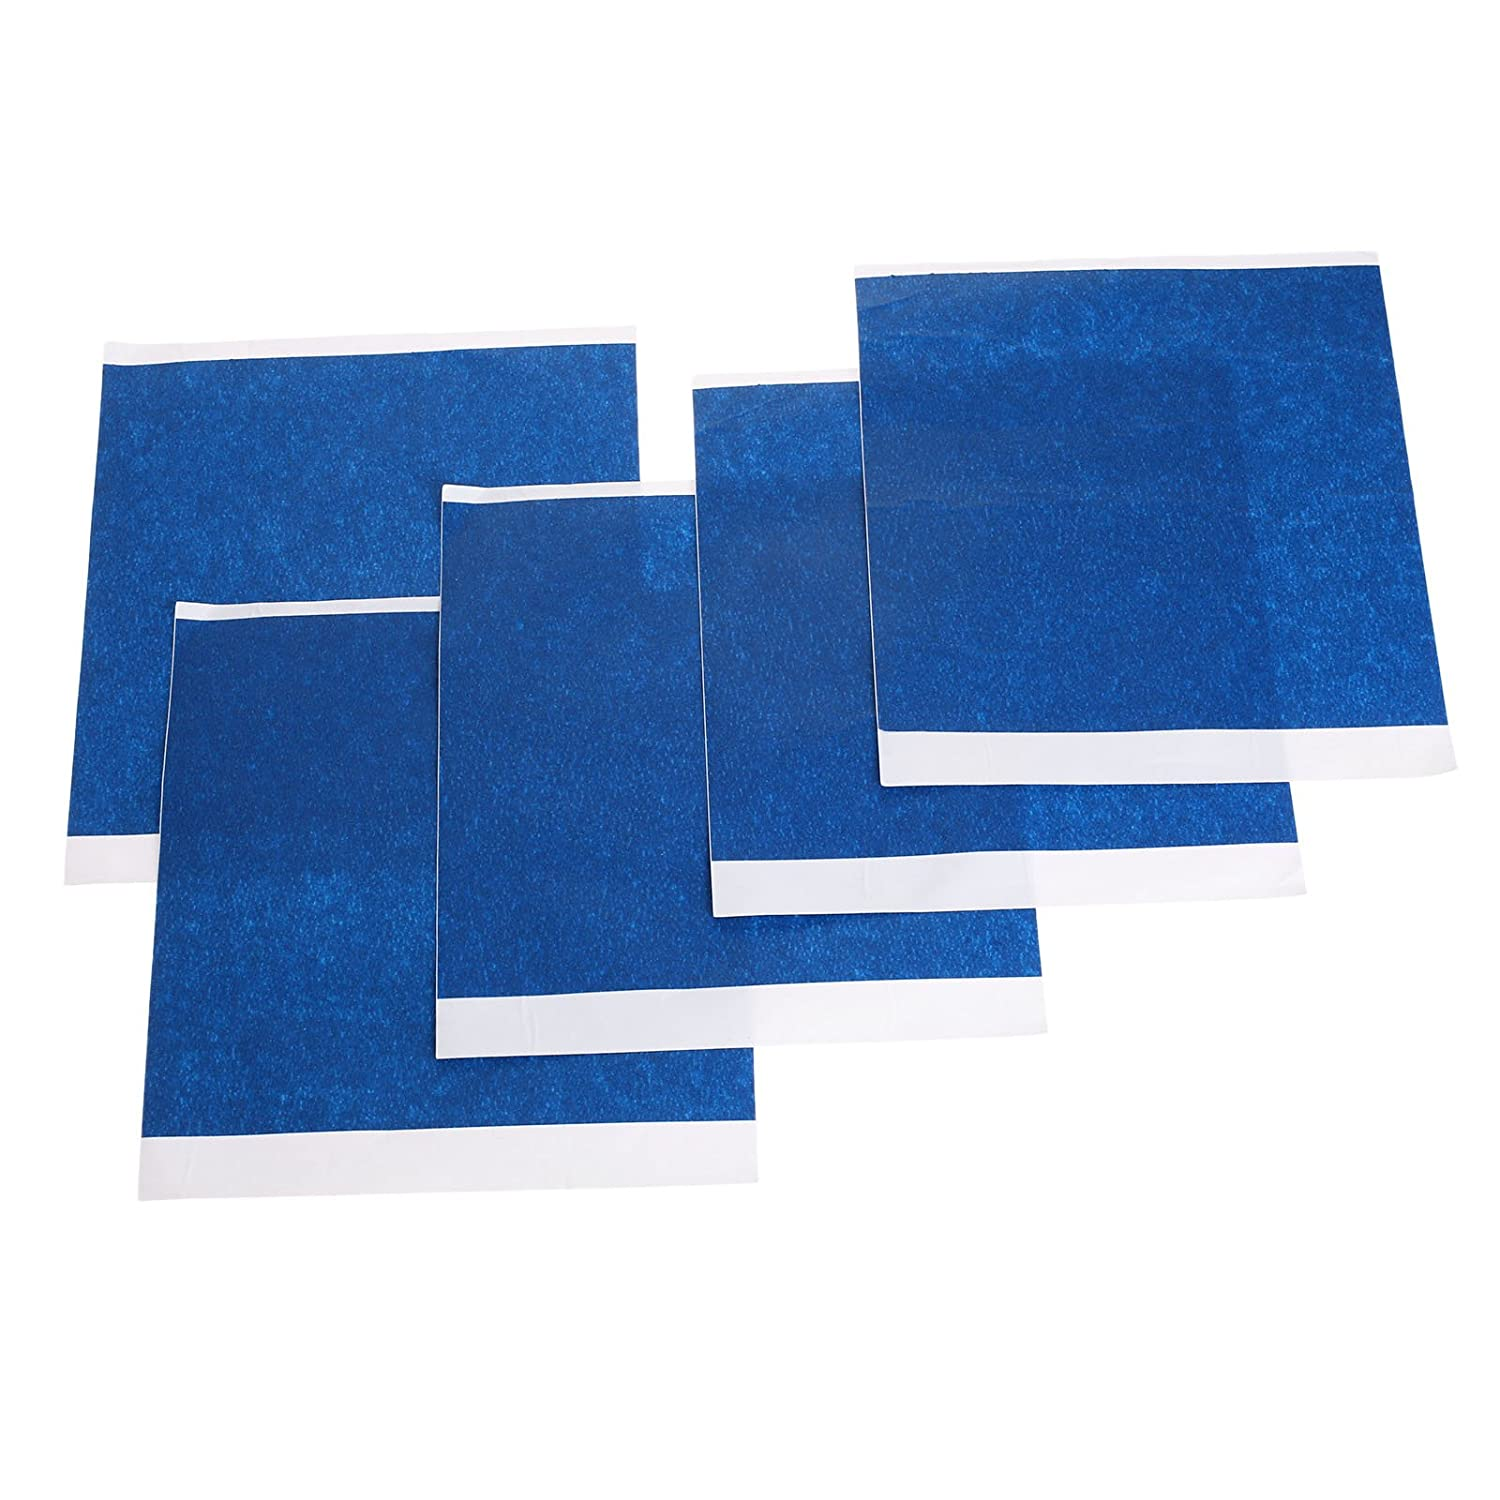 5pcs 200mm x 210mm 3D Printer Heated Bed Blue High Temperature Tape Rubber Adhesive MUXSAM